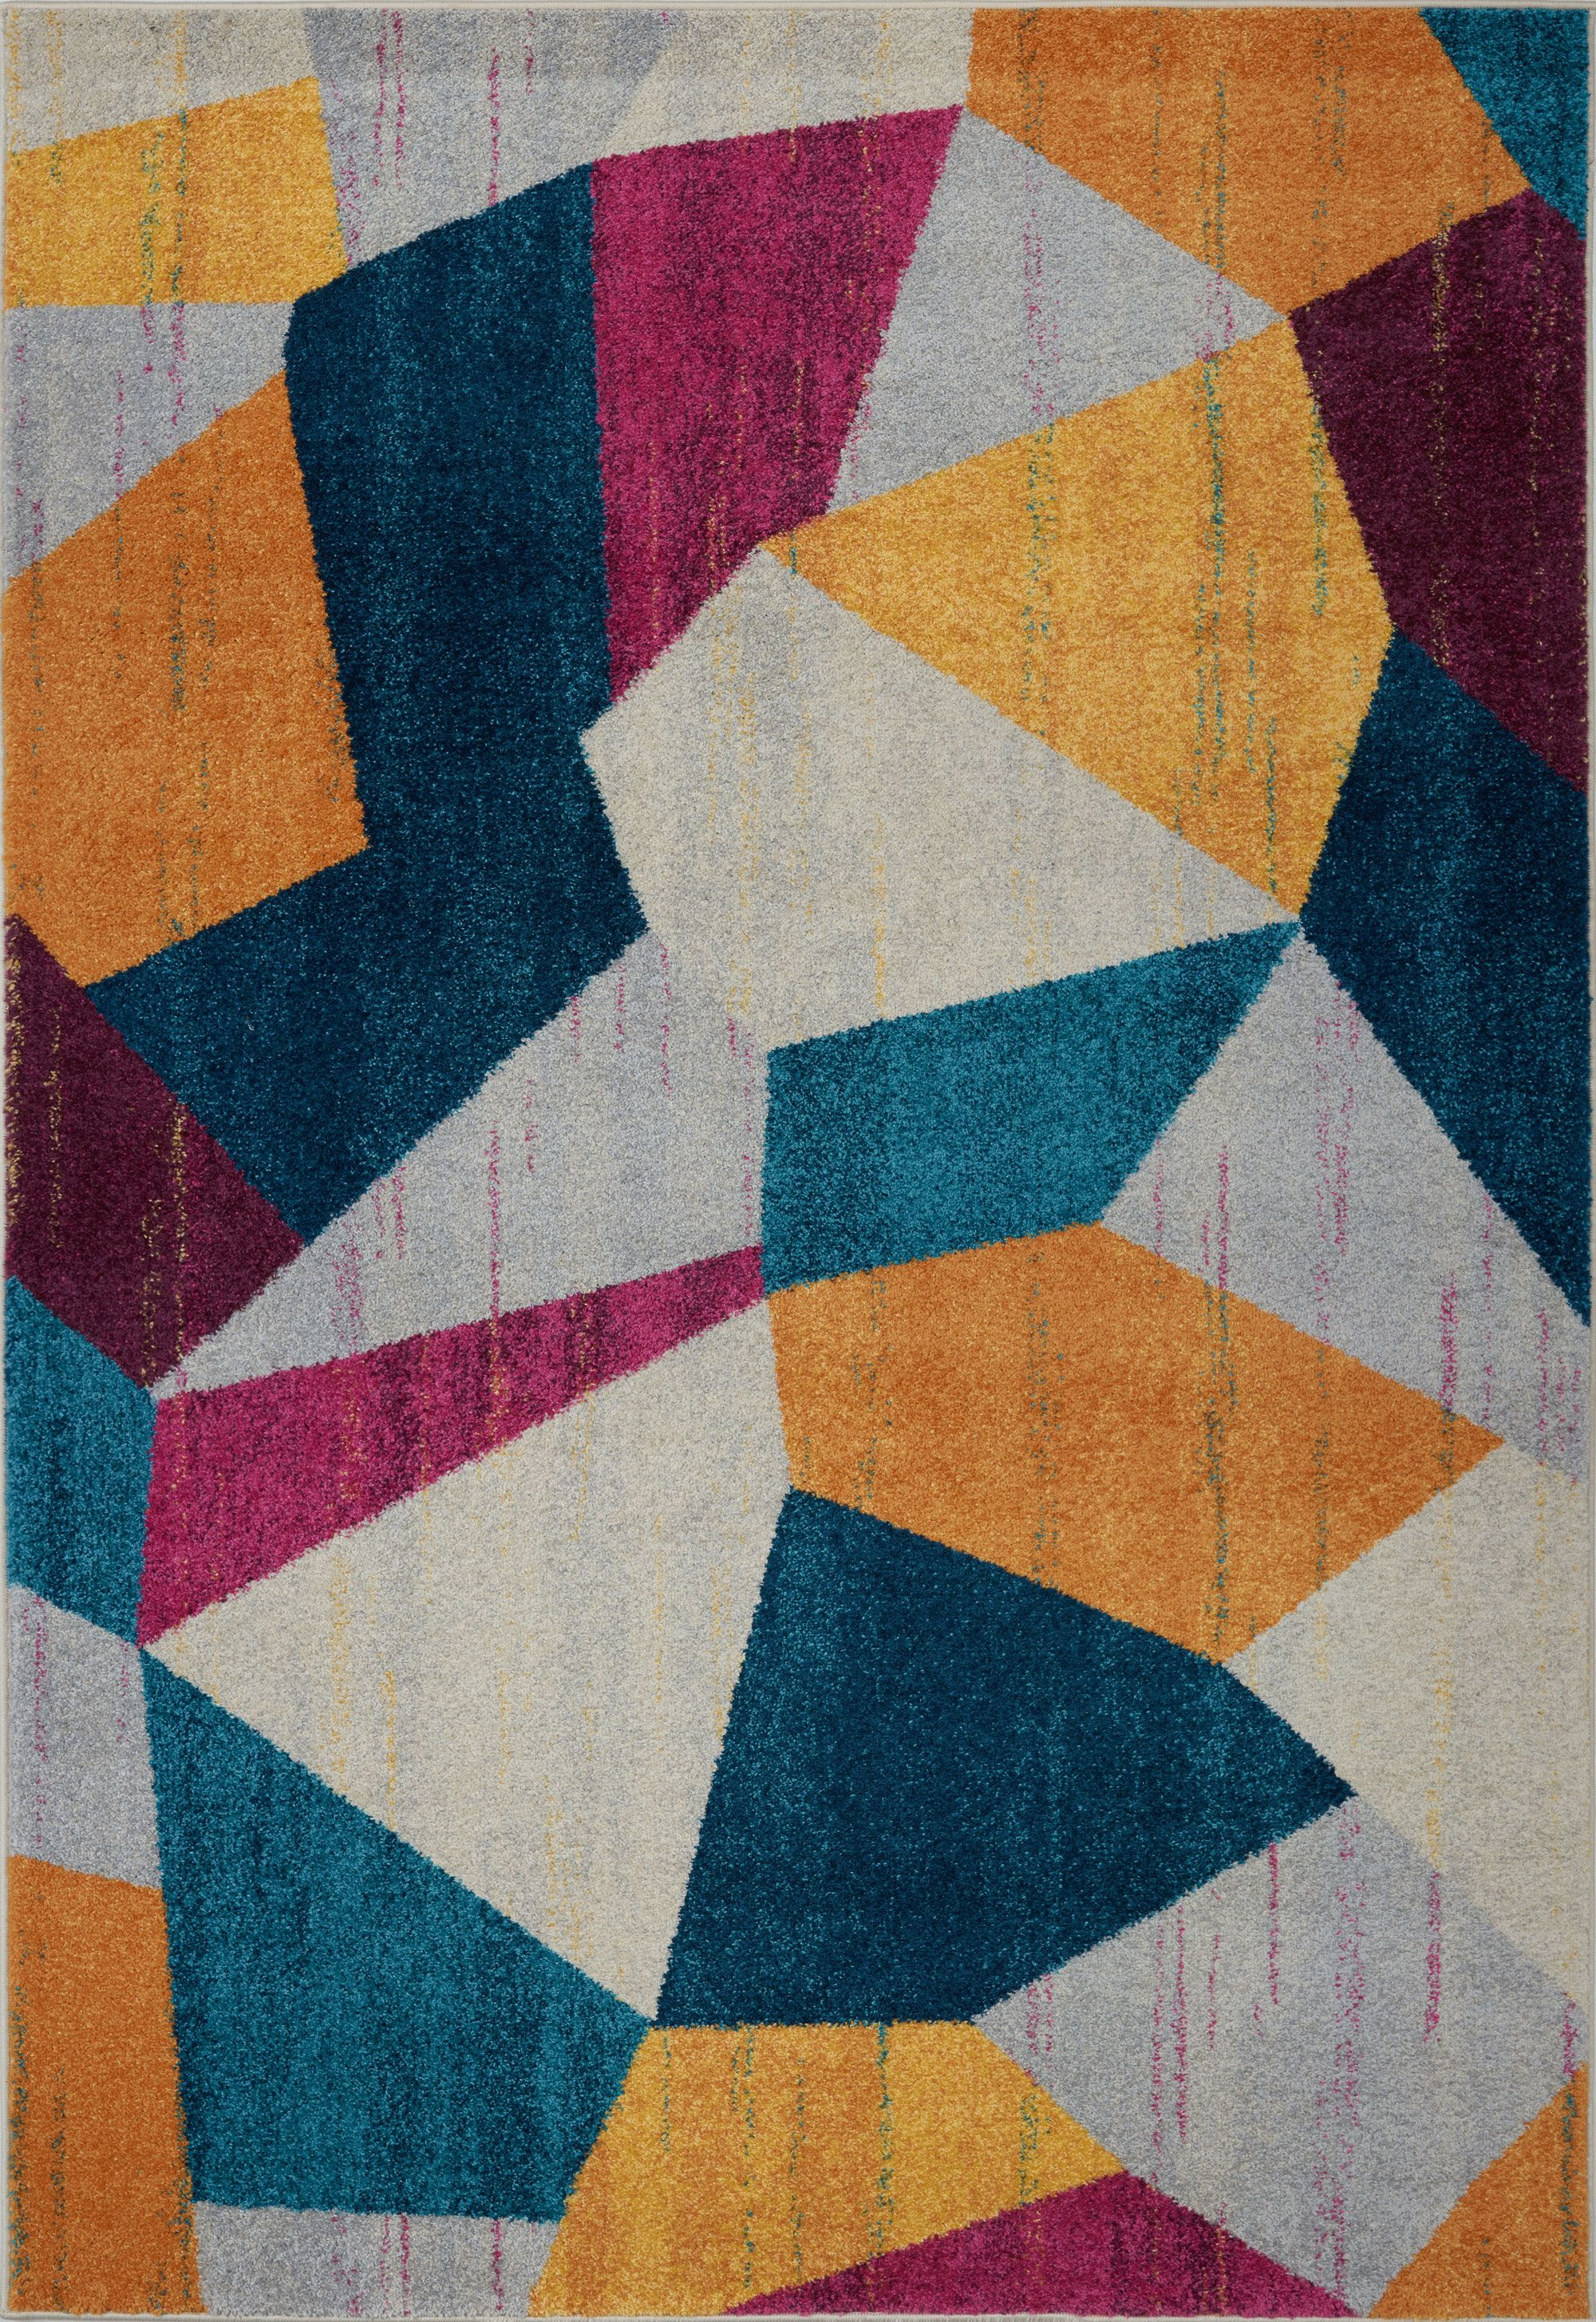 East York Multi Area Rug Teal Yellow Cream Darkpink Pink Ping Colorful Multicolor Abstract Home Décor